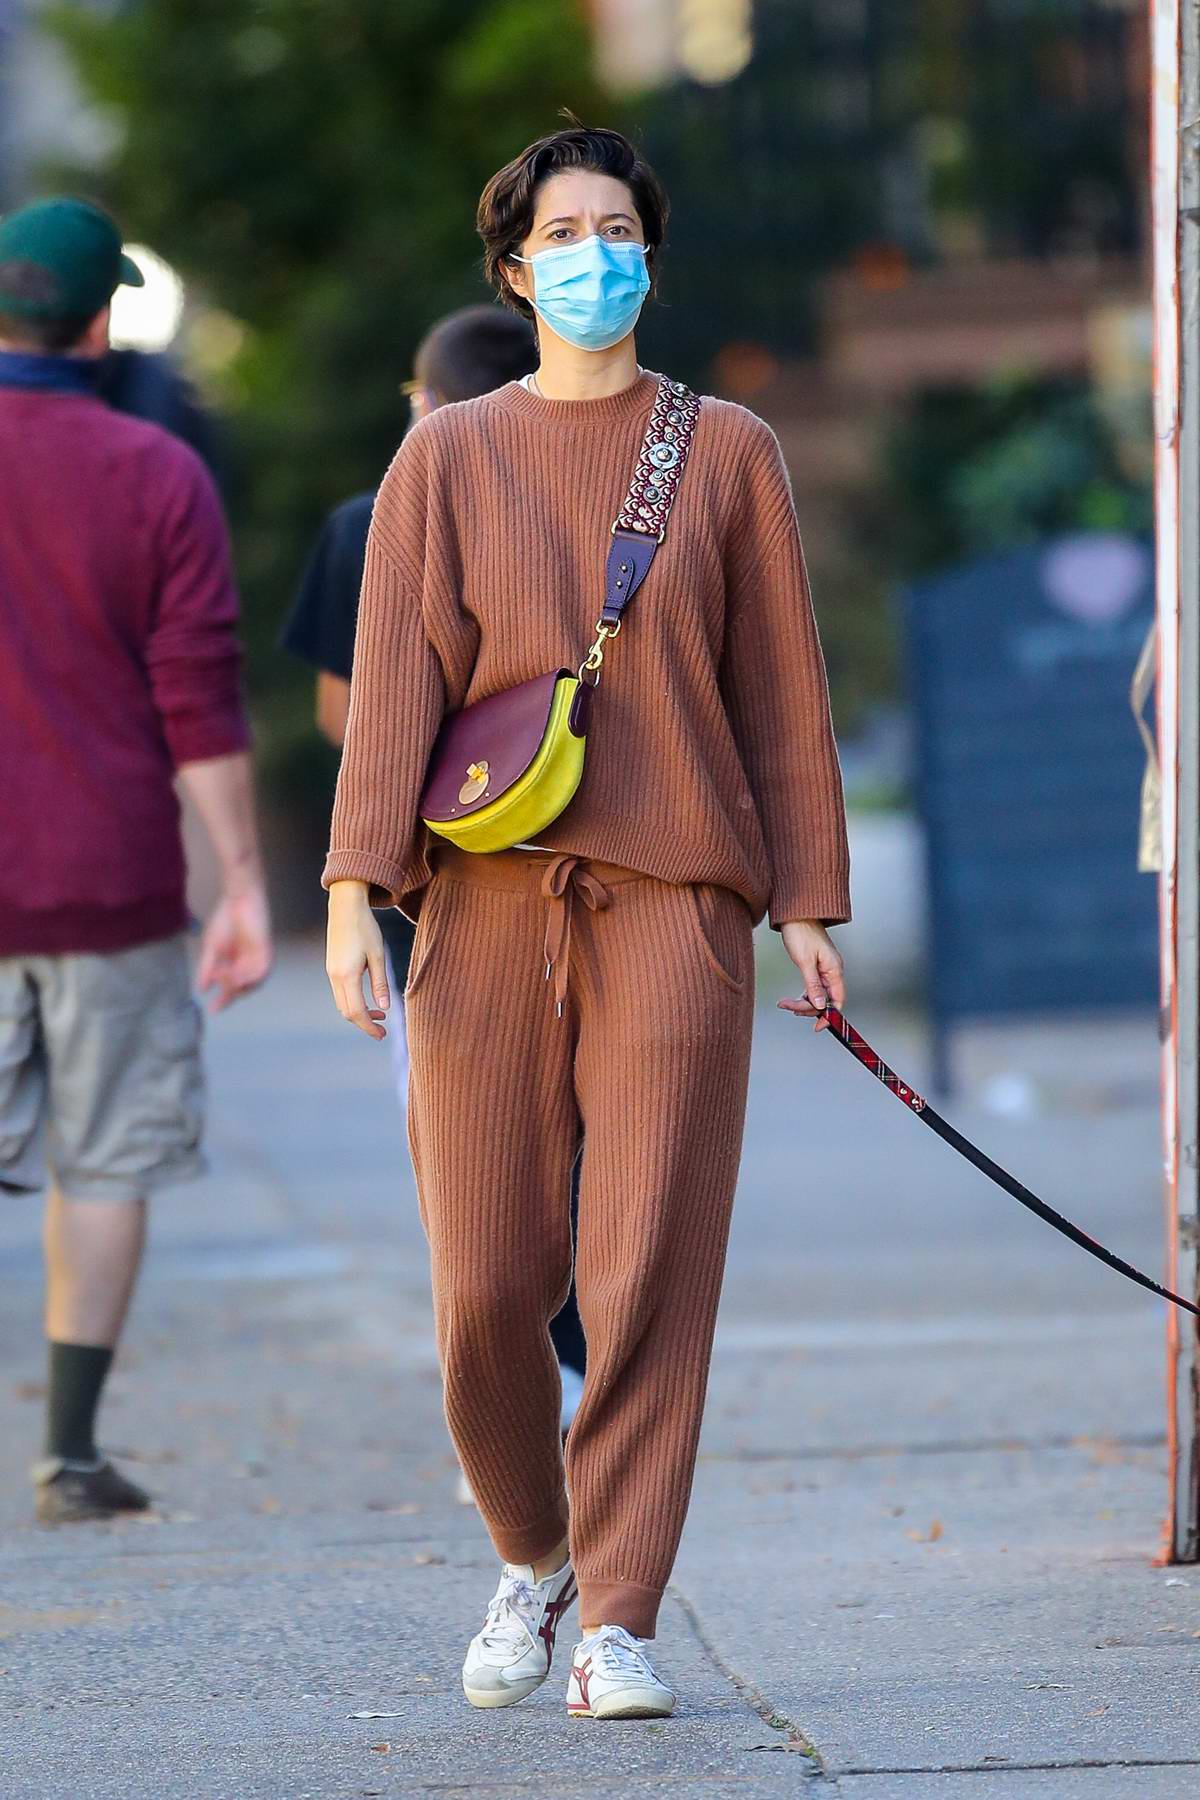 Mary Elizabeth Winstead looks comfy in rust-colored sweats while out walking her dog in West Village, New York